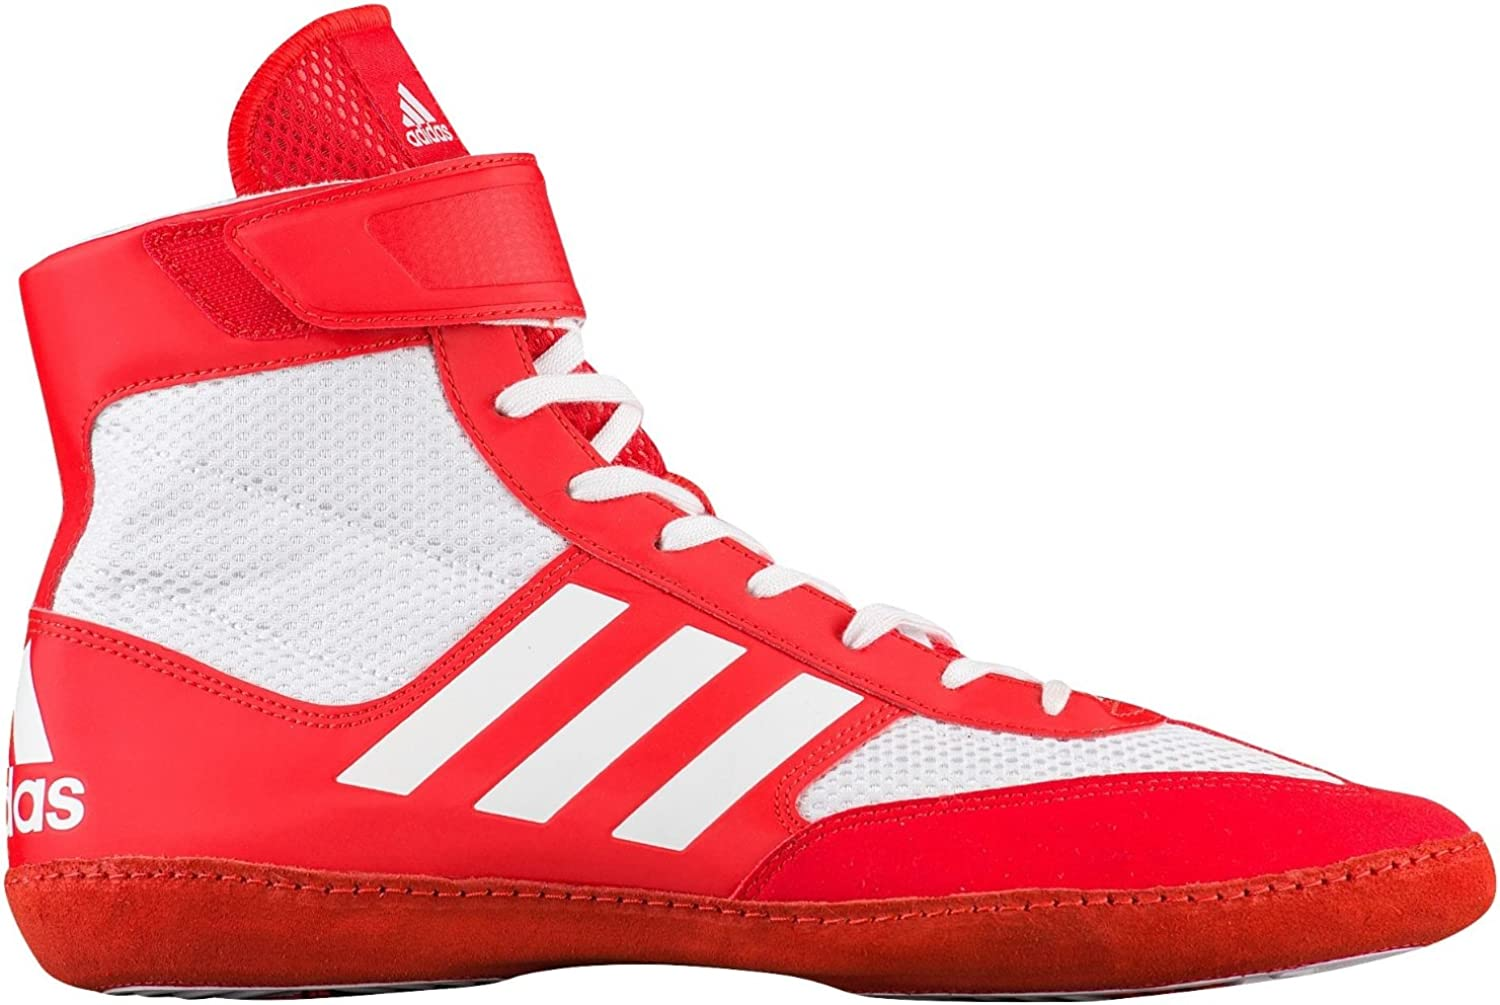 Adidas Hommes's Combat Speed.5, Core rouge blanc Core rouge, 8 M US